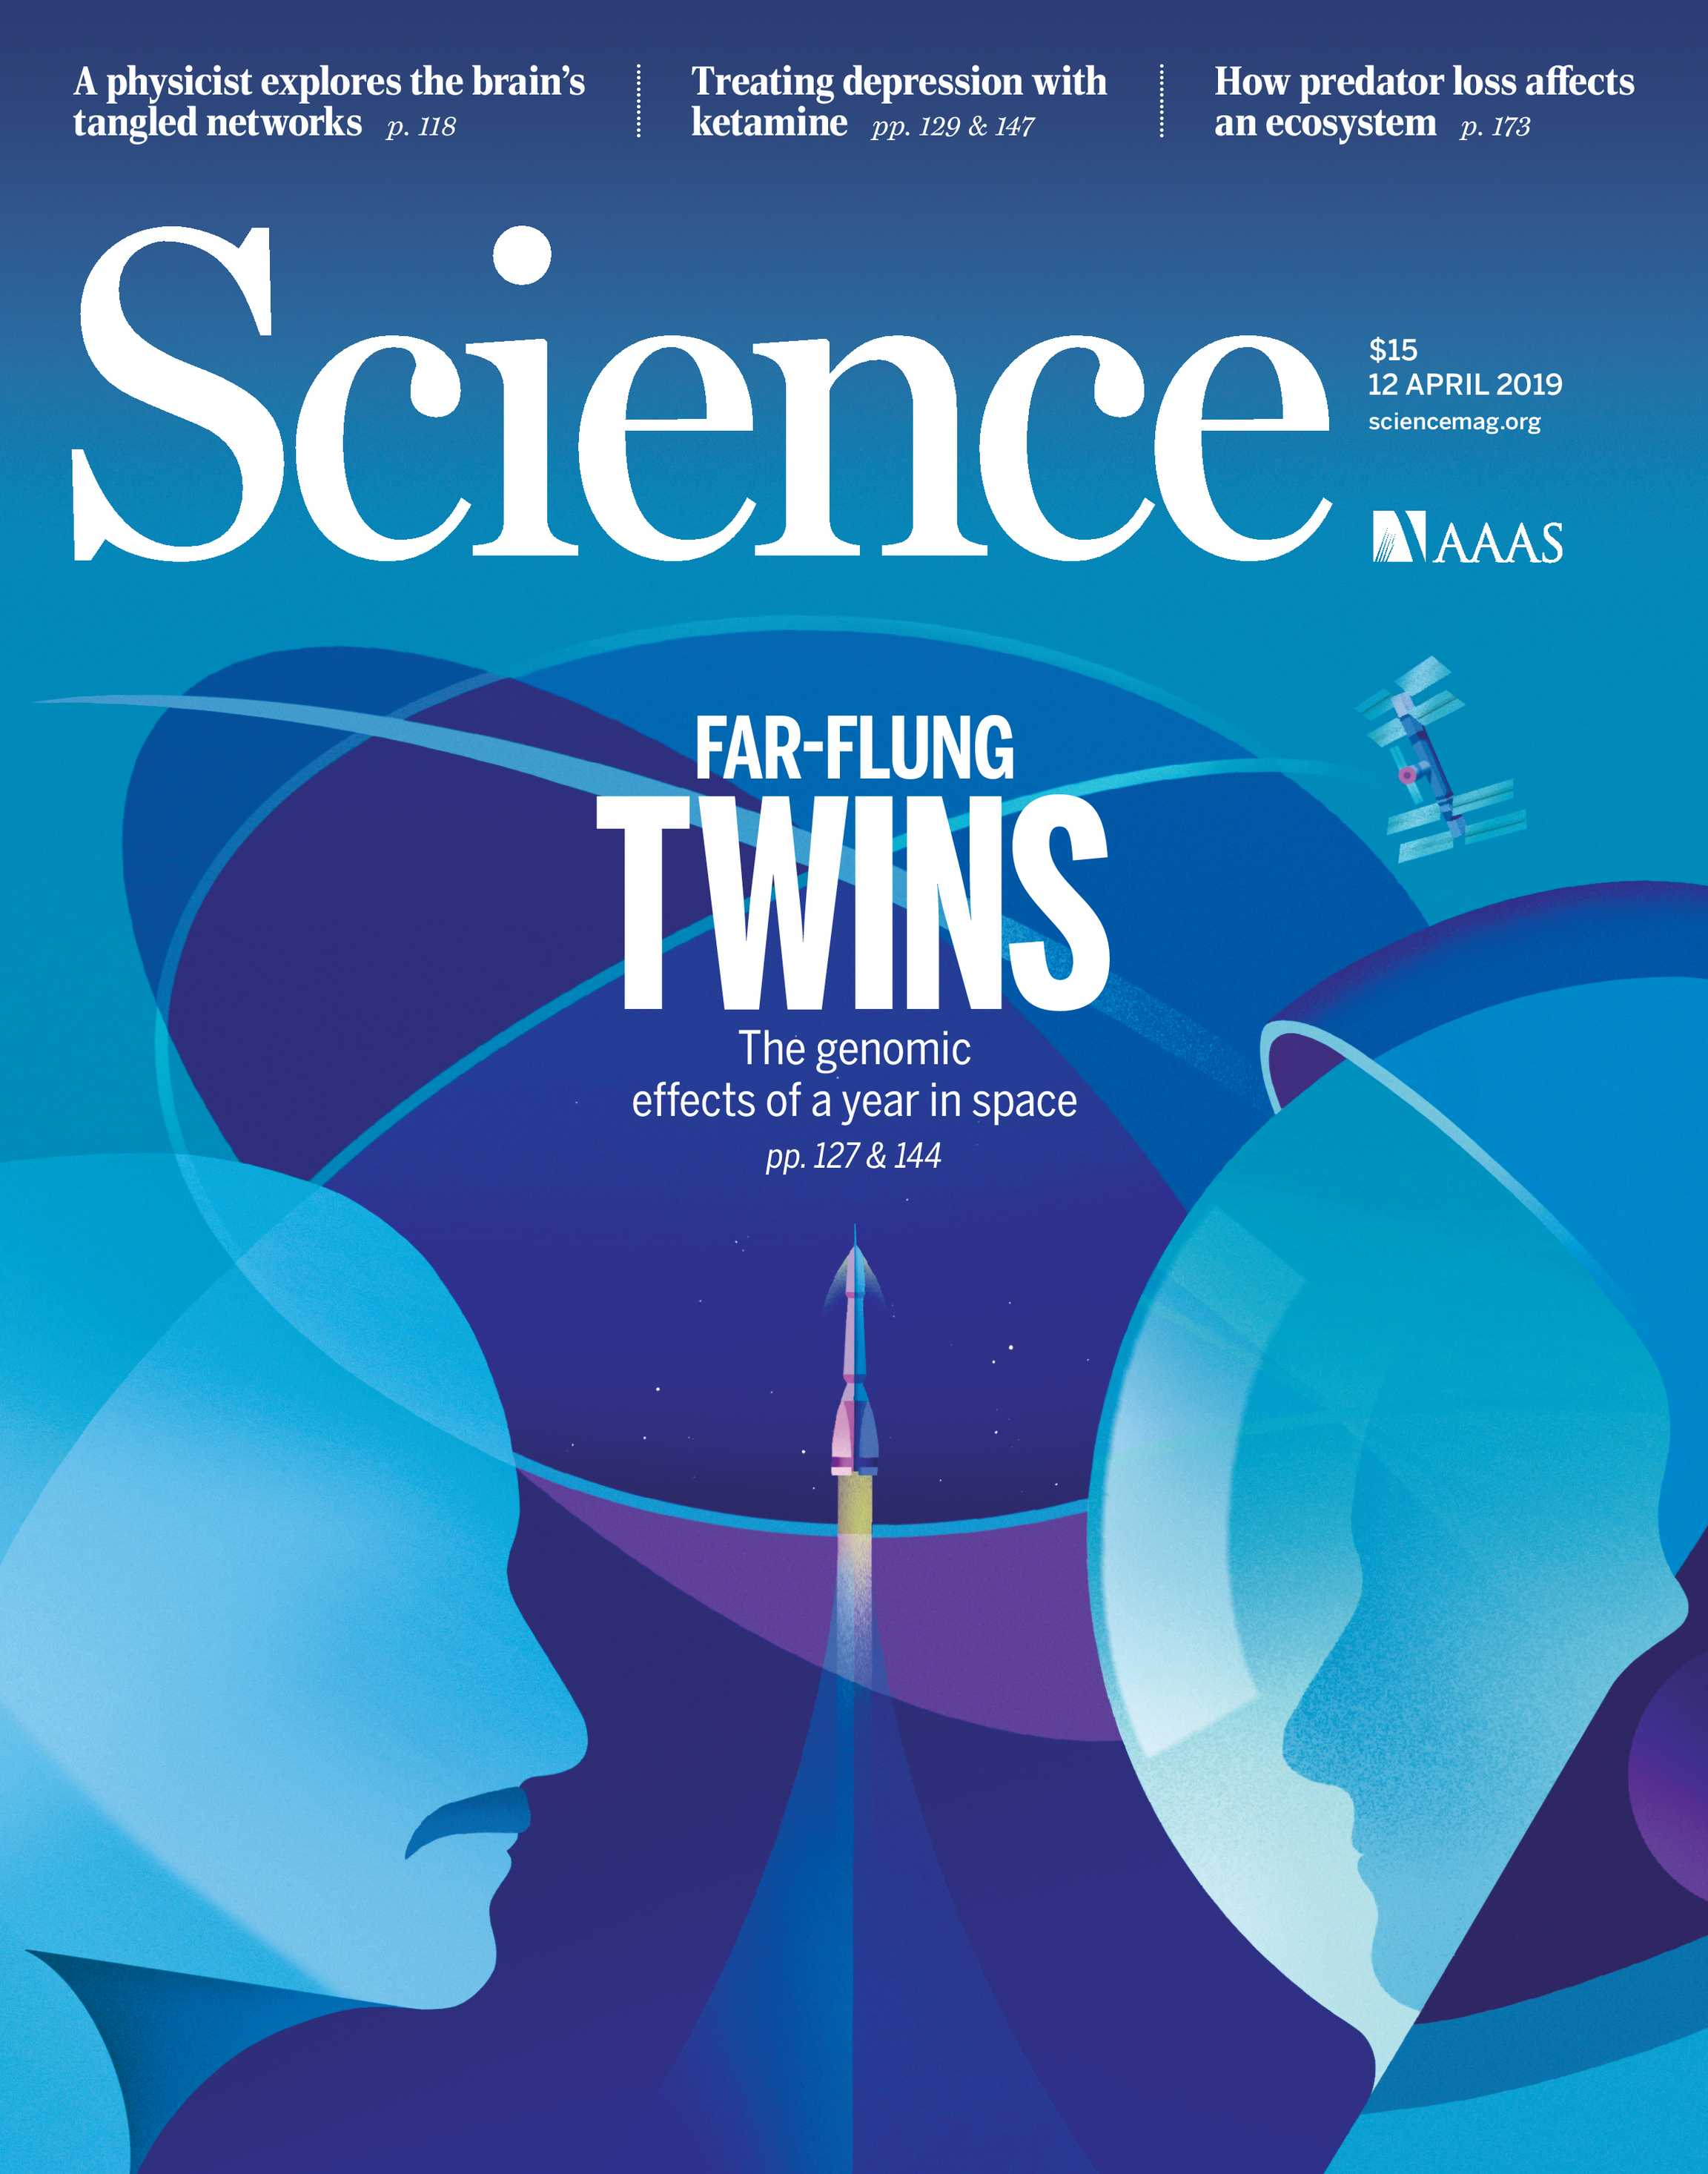 science_twins_cover.jpg